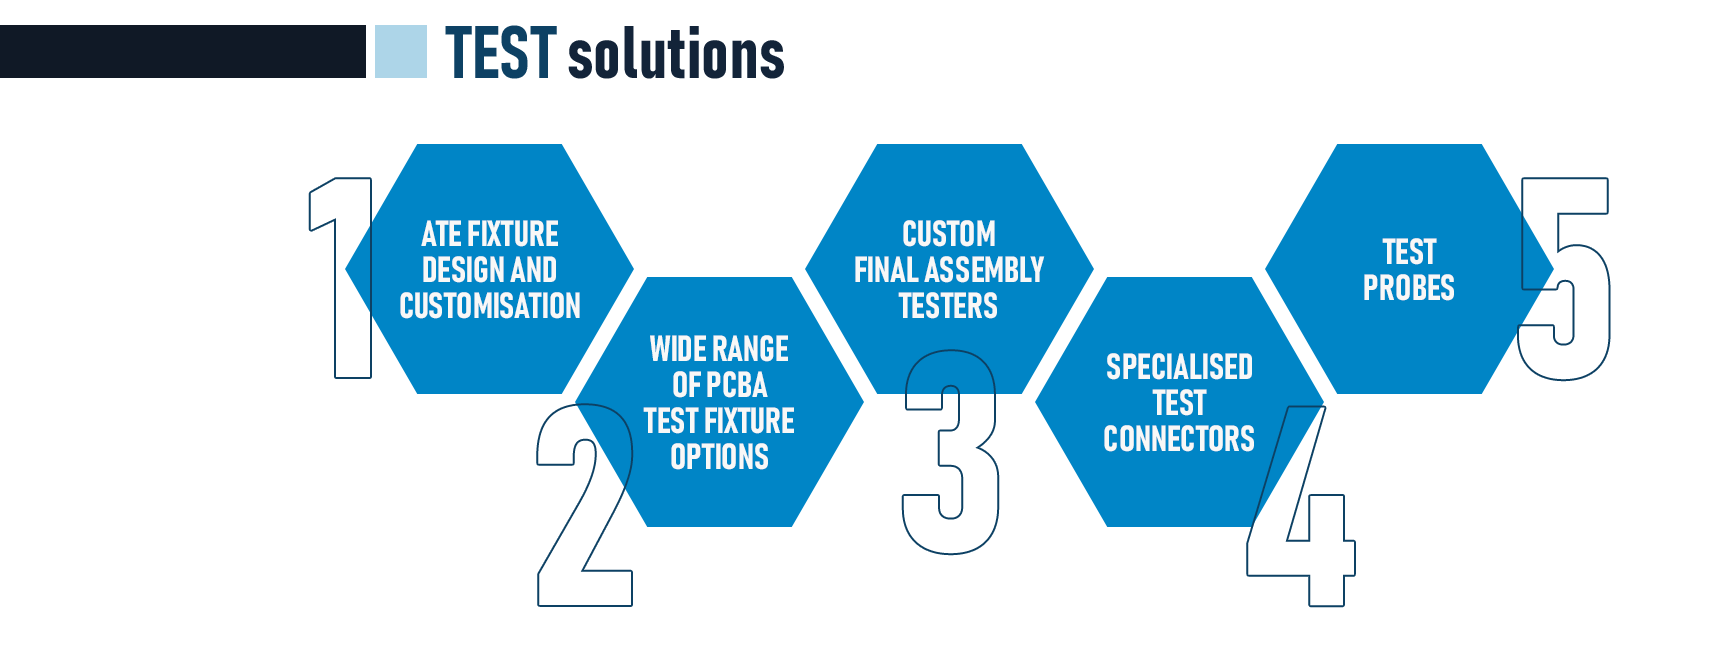 Test Solutions